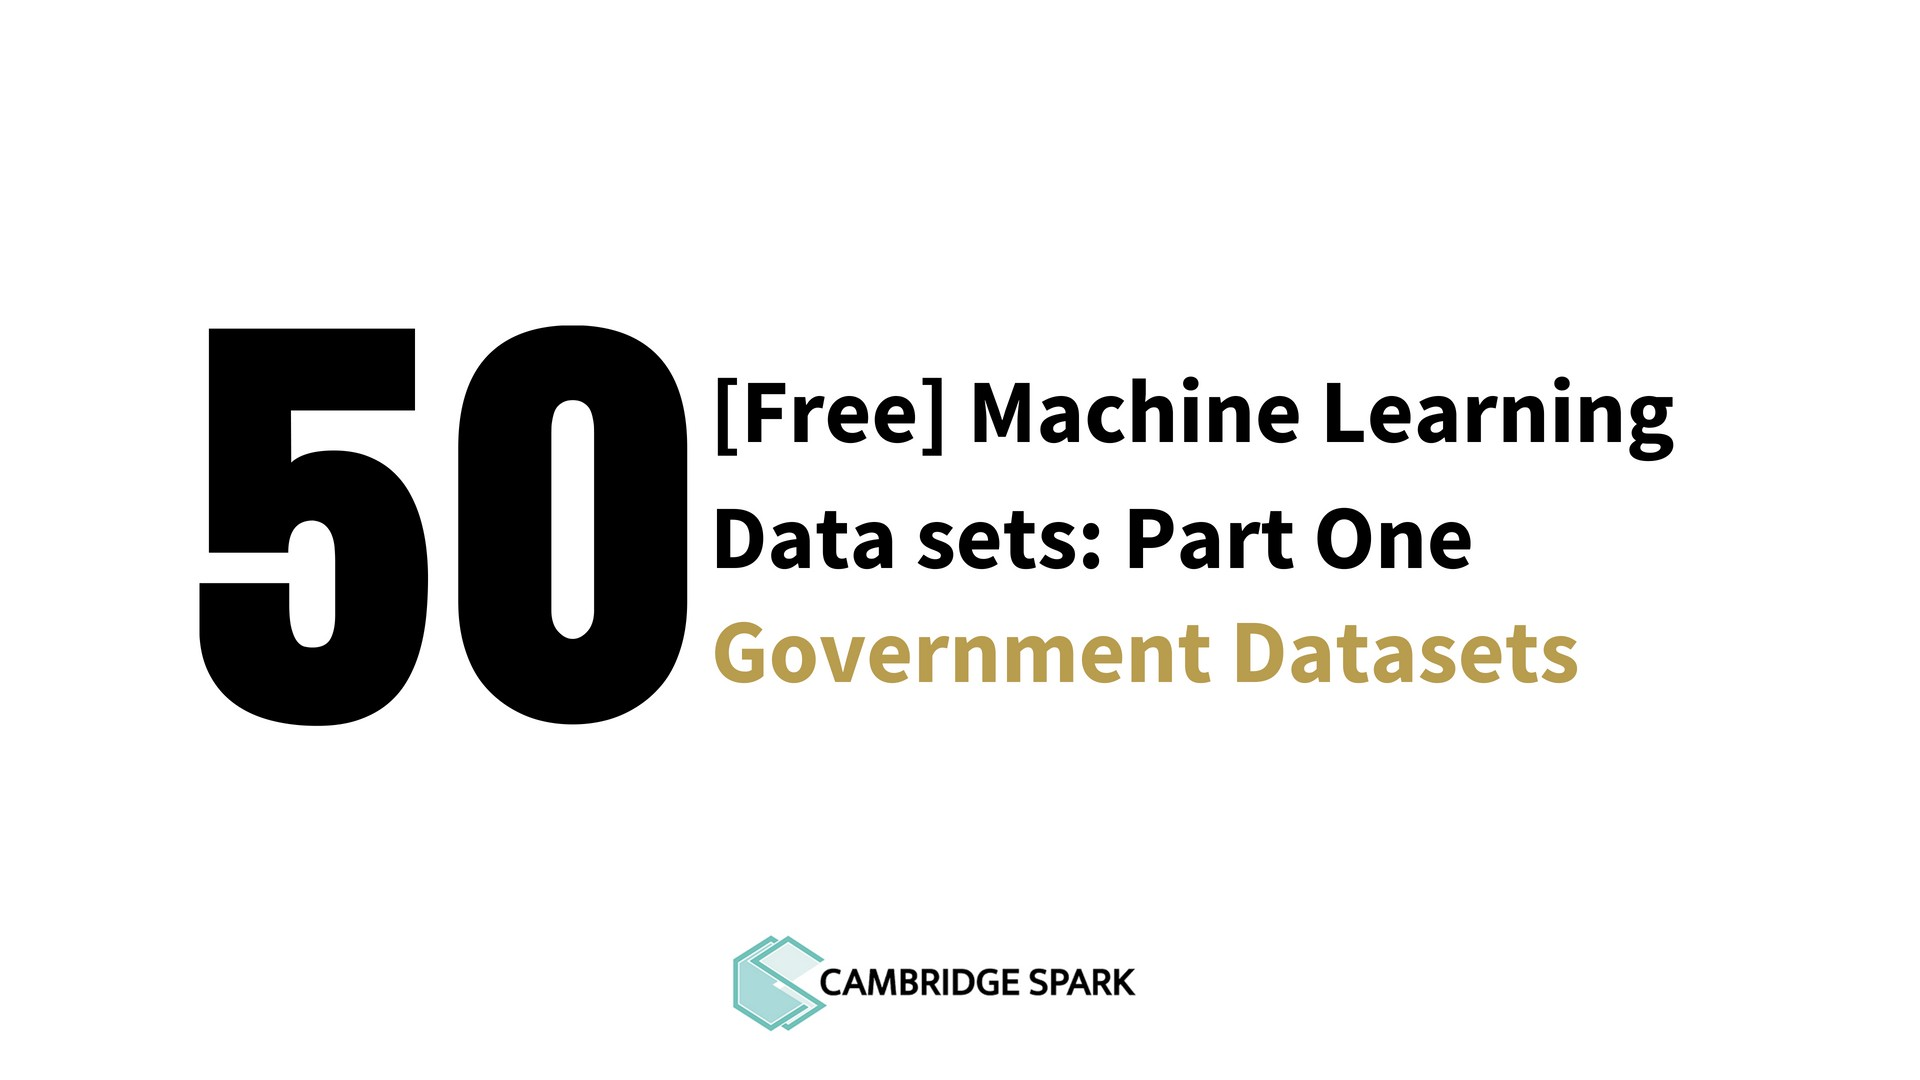 50 Free Machine Learning Datasets: Part One — Government Data portals